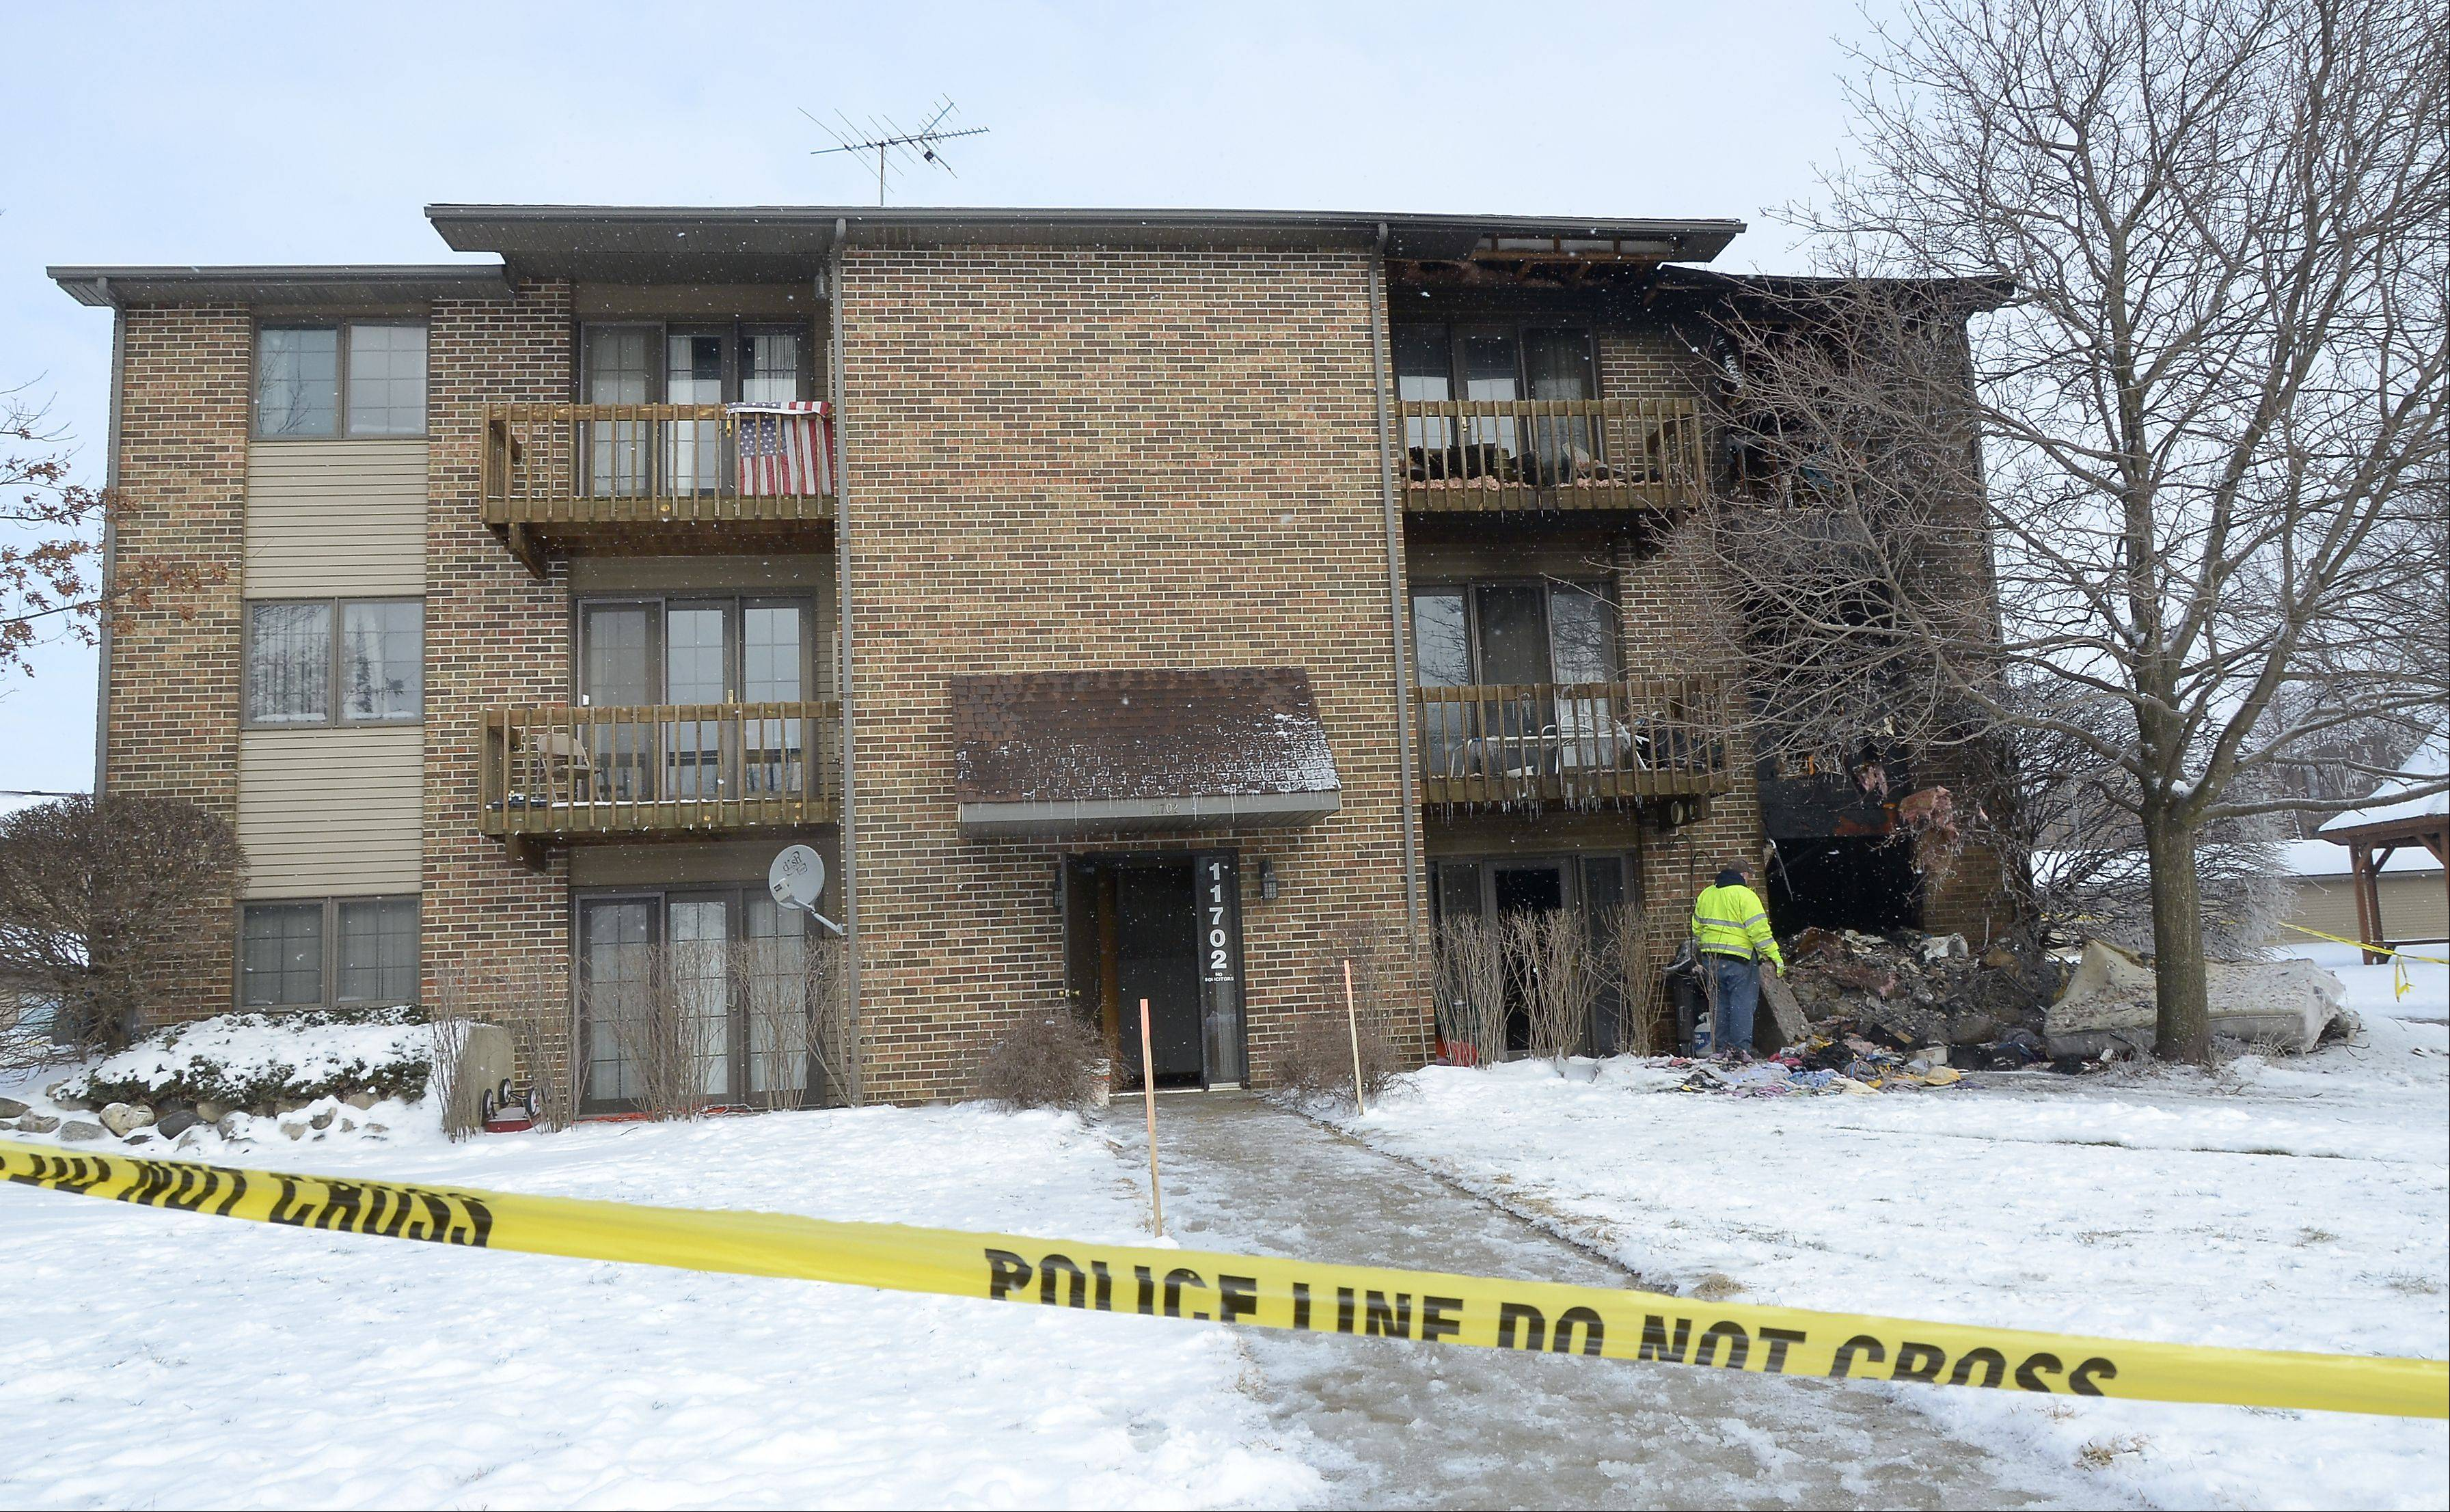 A firefighter works at the scene of a fatal apartment fire Sunday morning in the Woodcreek Apartments complex in Huntley. Officials said one man was killed and about a dozen other residents were displaced by the early morning fire.